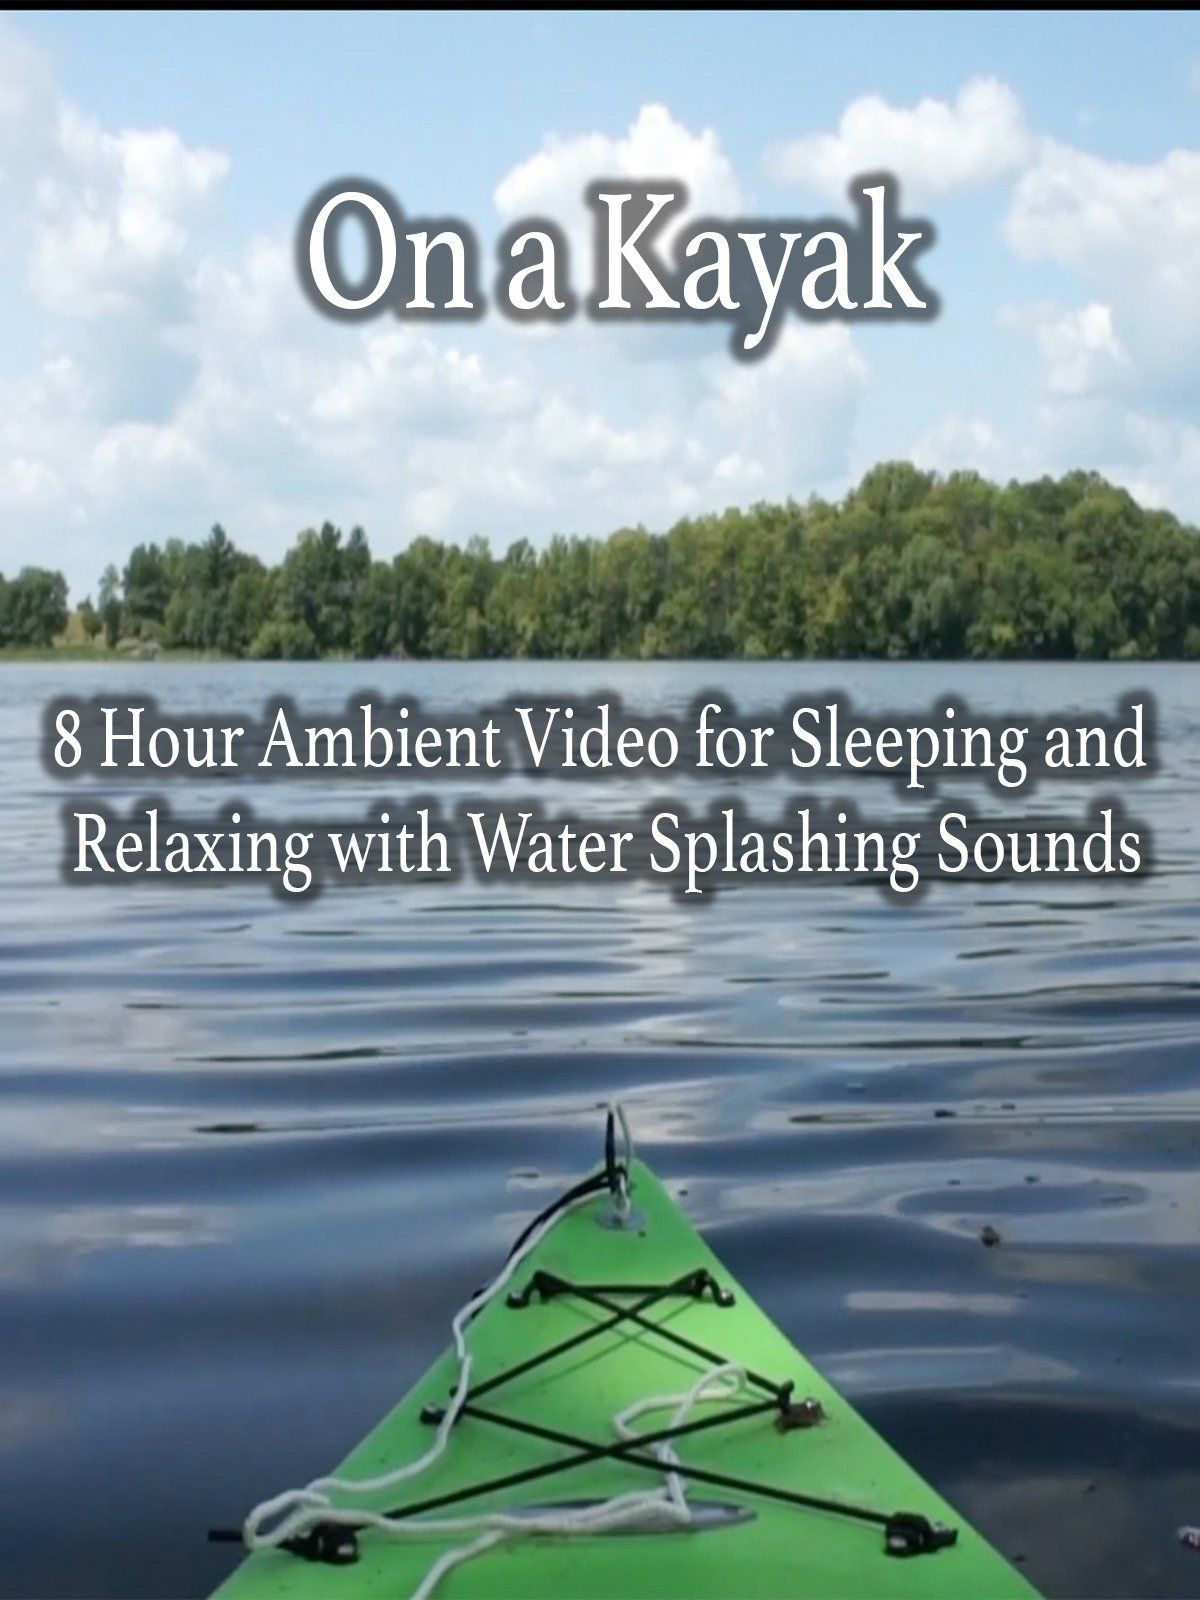 On a Kayak 8 Hour Ambient Video for Sleeping and Relaxing with Water Splashing Sounds